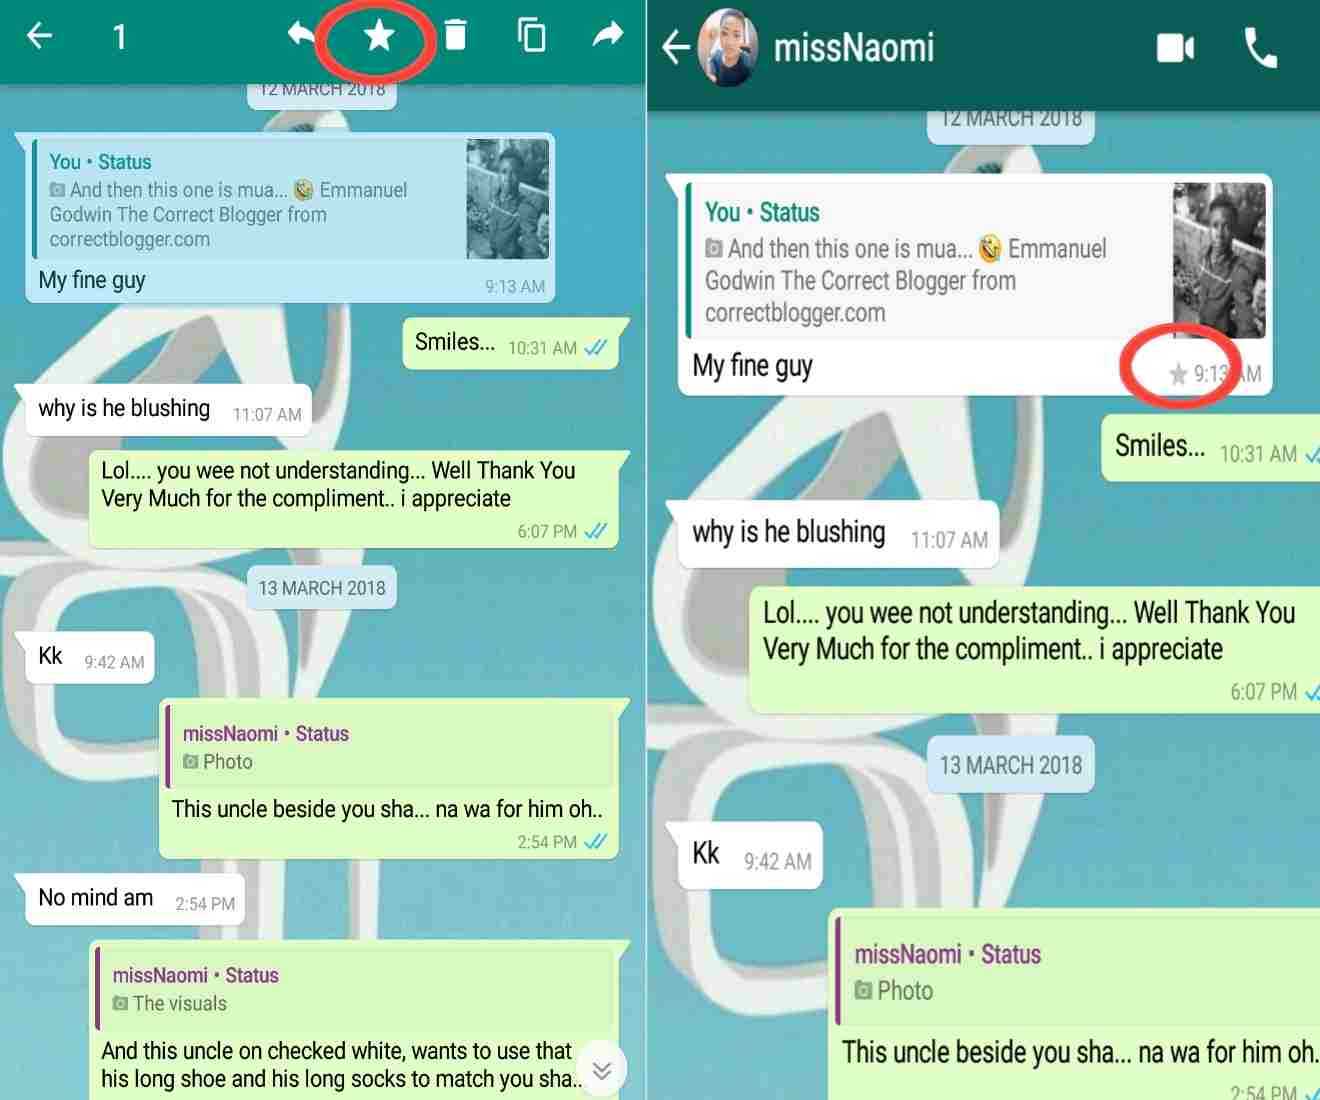 whatsapp tricks 101 - How to star messages on WhatsApp